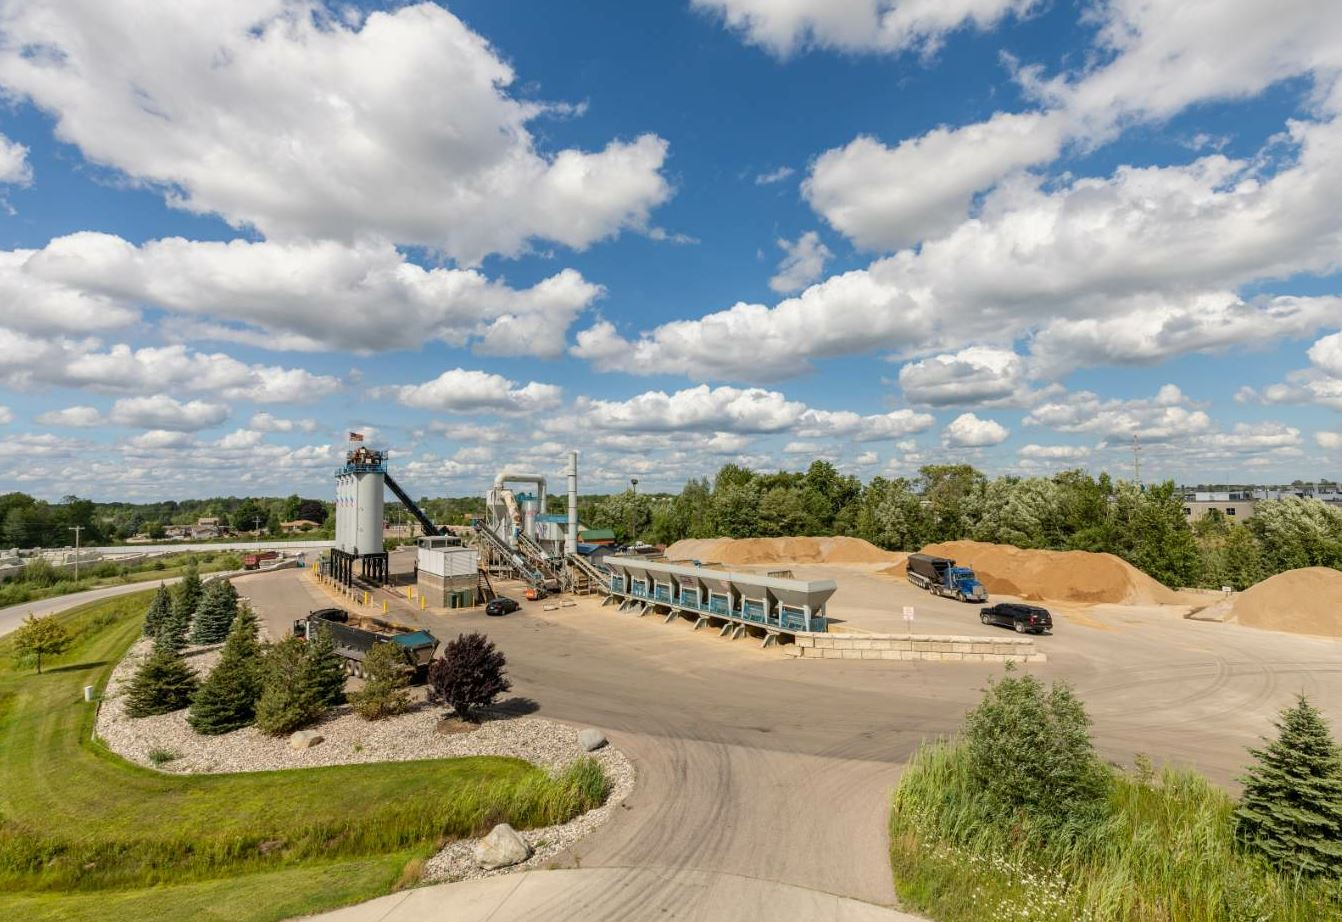 The entire Superior Asphalt Inc. Dutton plant site is paved to keep dust to a minimum and the yard is swept daily. Trucks must adhere to a speed limit to help keep dust down as well. All photos by Robert Stone, Grand Rapids, Michigan, courtesy Superior Asphalt Inc.